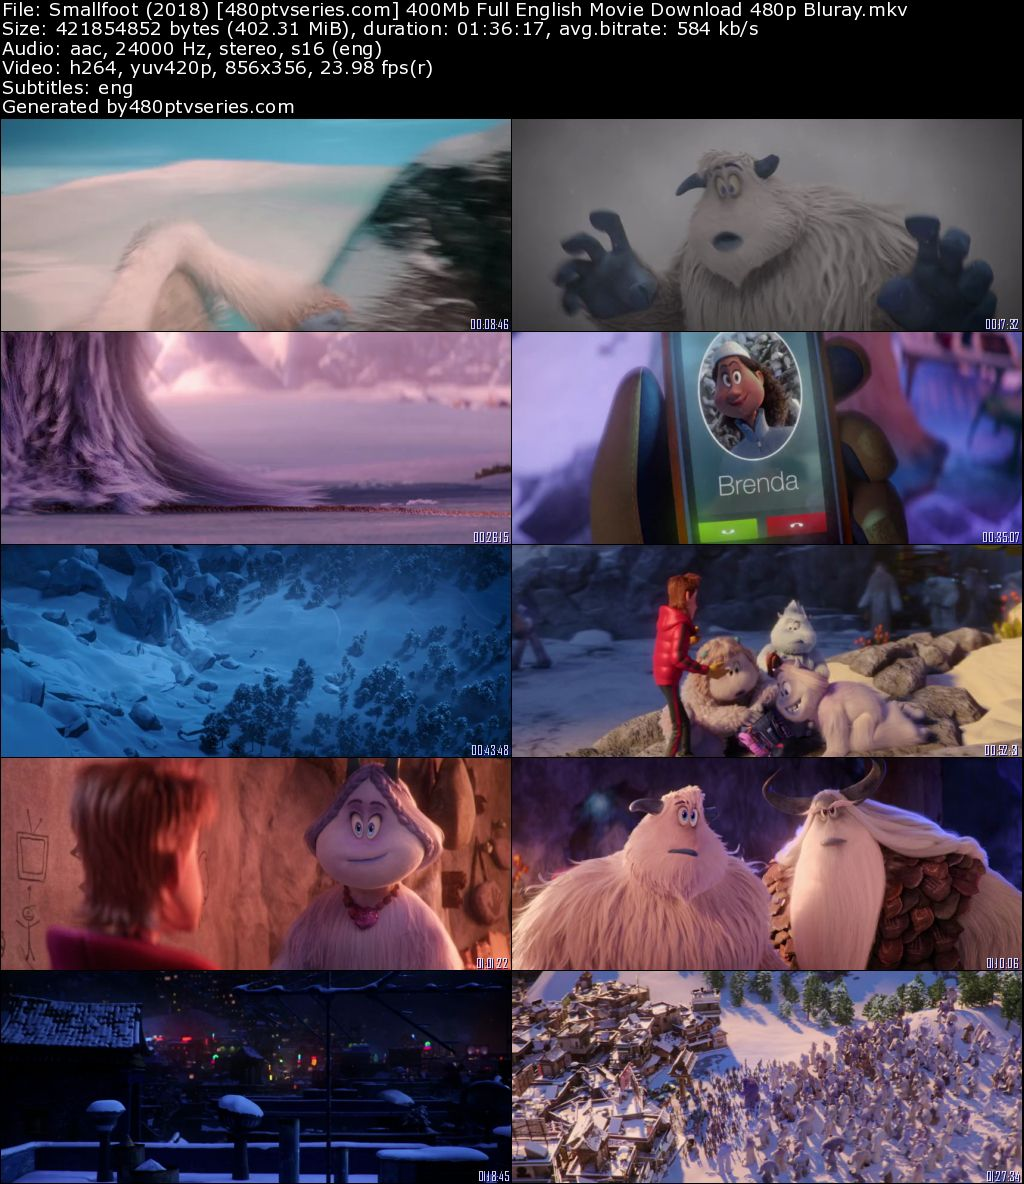 Smallfoot (2018) 400Mb Full English Movie Download 480p Bluray Free Watch Online Full Movie Download Worldfree4u 9xmovies